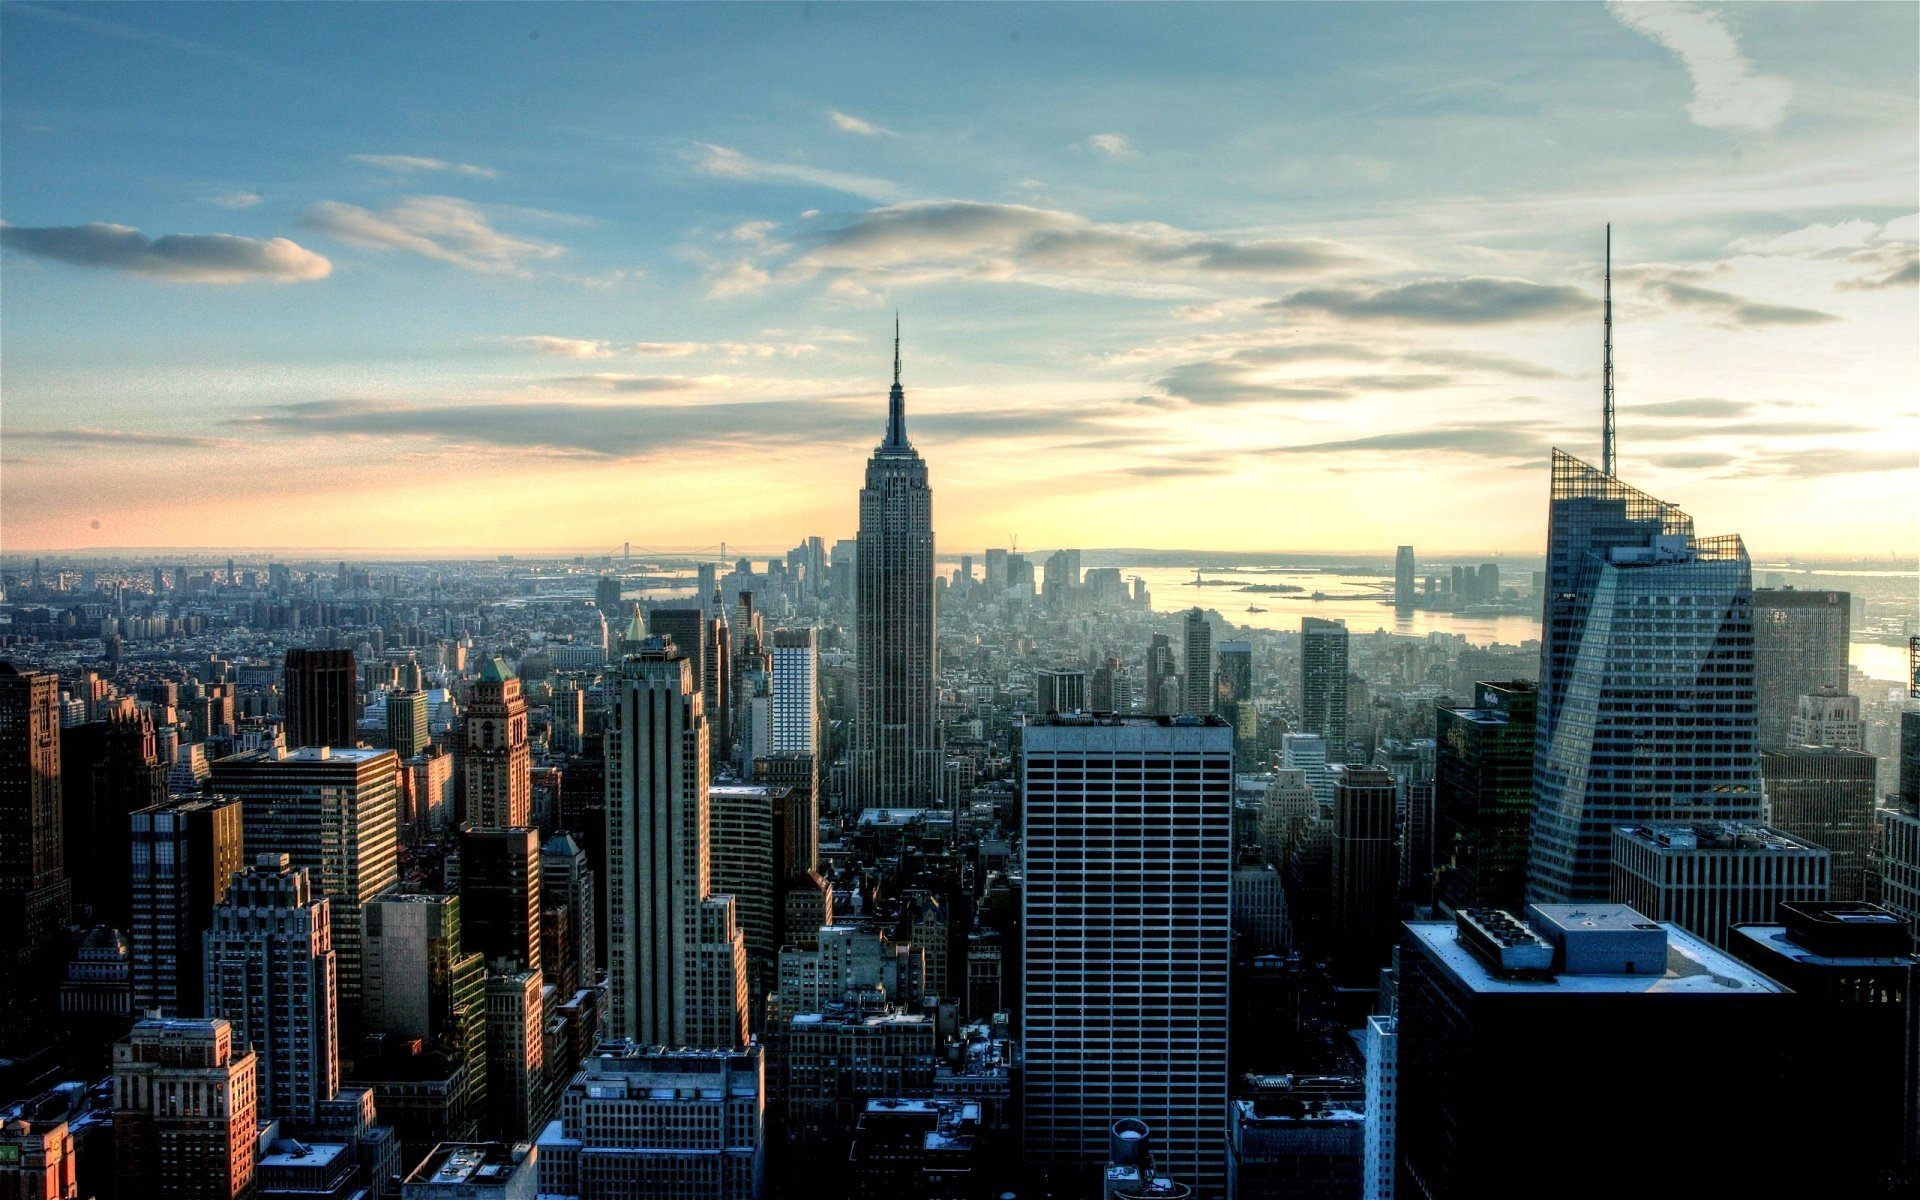 New York City Skyline Wallpapers wallpaper wallpaper hd background 1920x1200